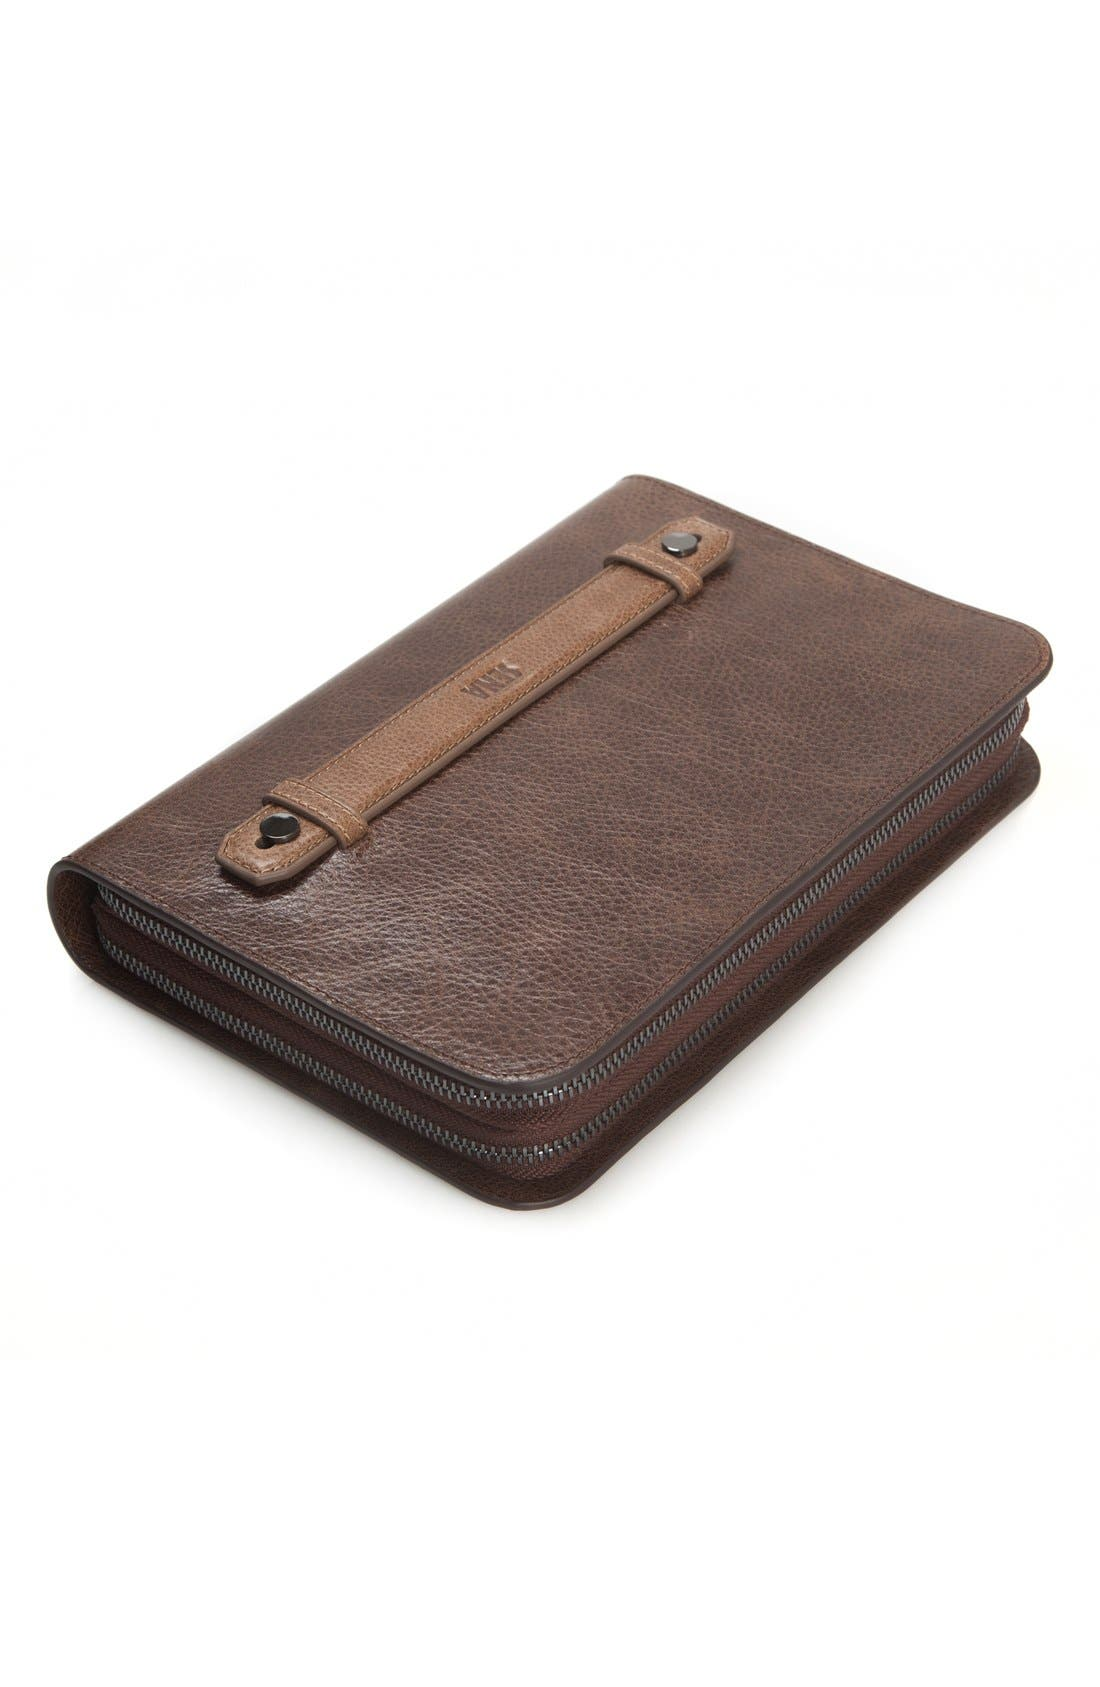 'Heritage' iPad mini All-in-One Case,                             Main thumbnail 1, color,                             213